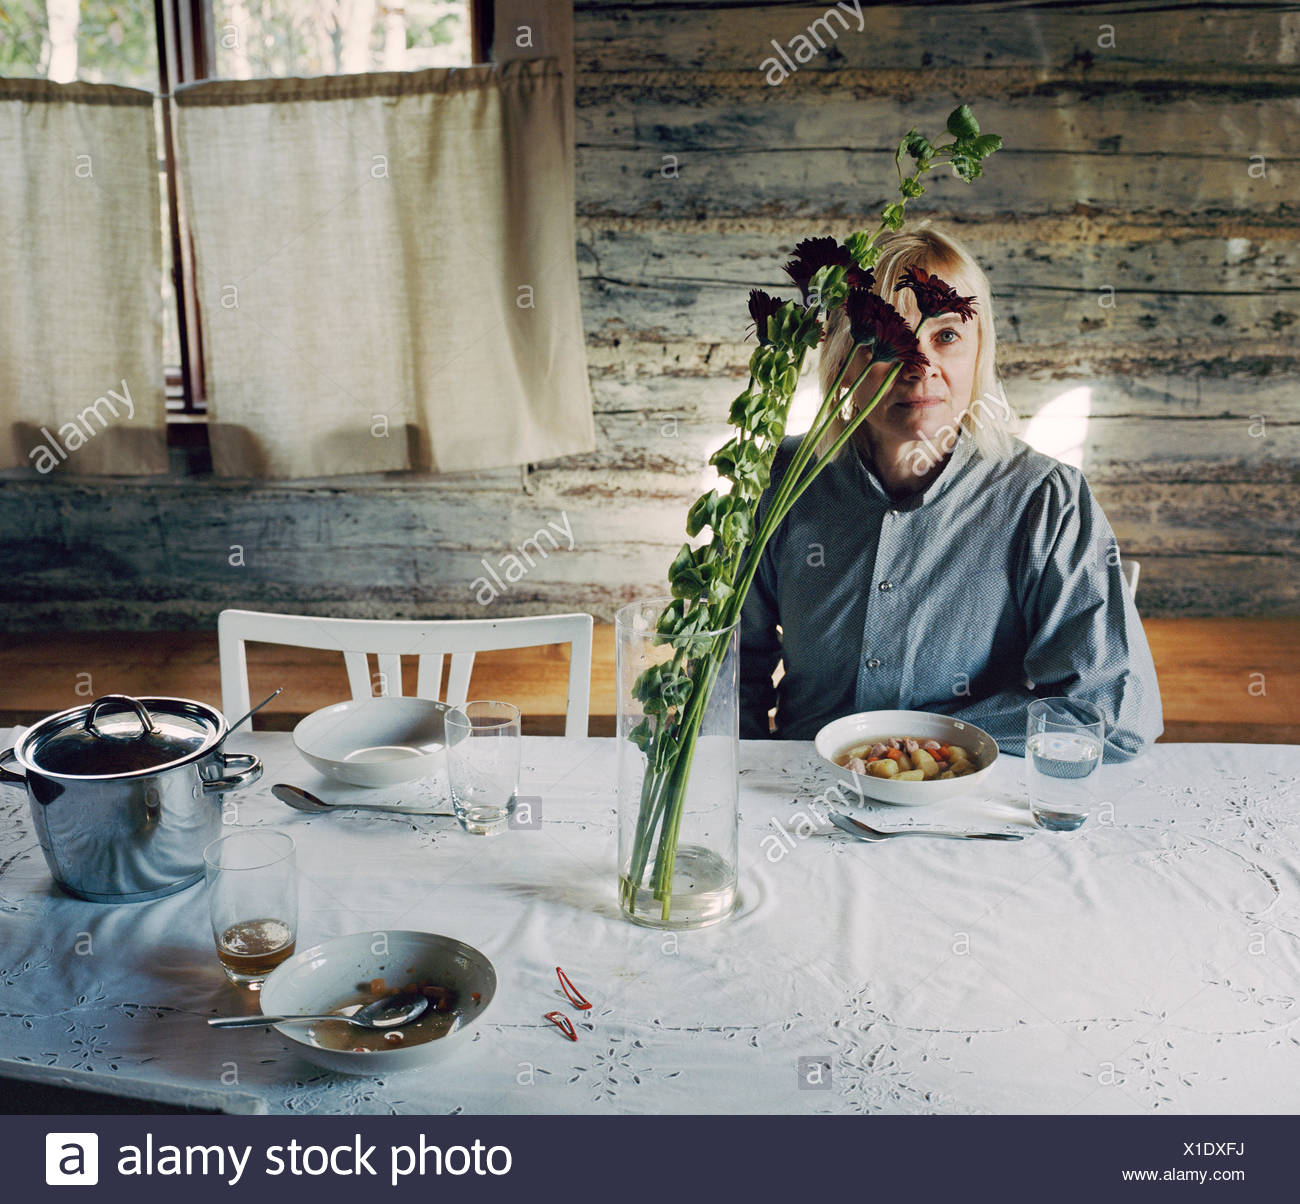 Finland, Mature woman sitting at table - Stock Image